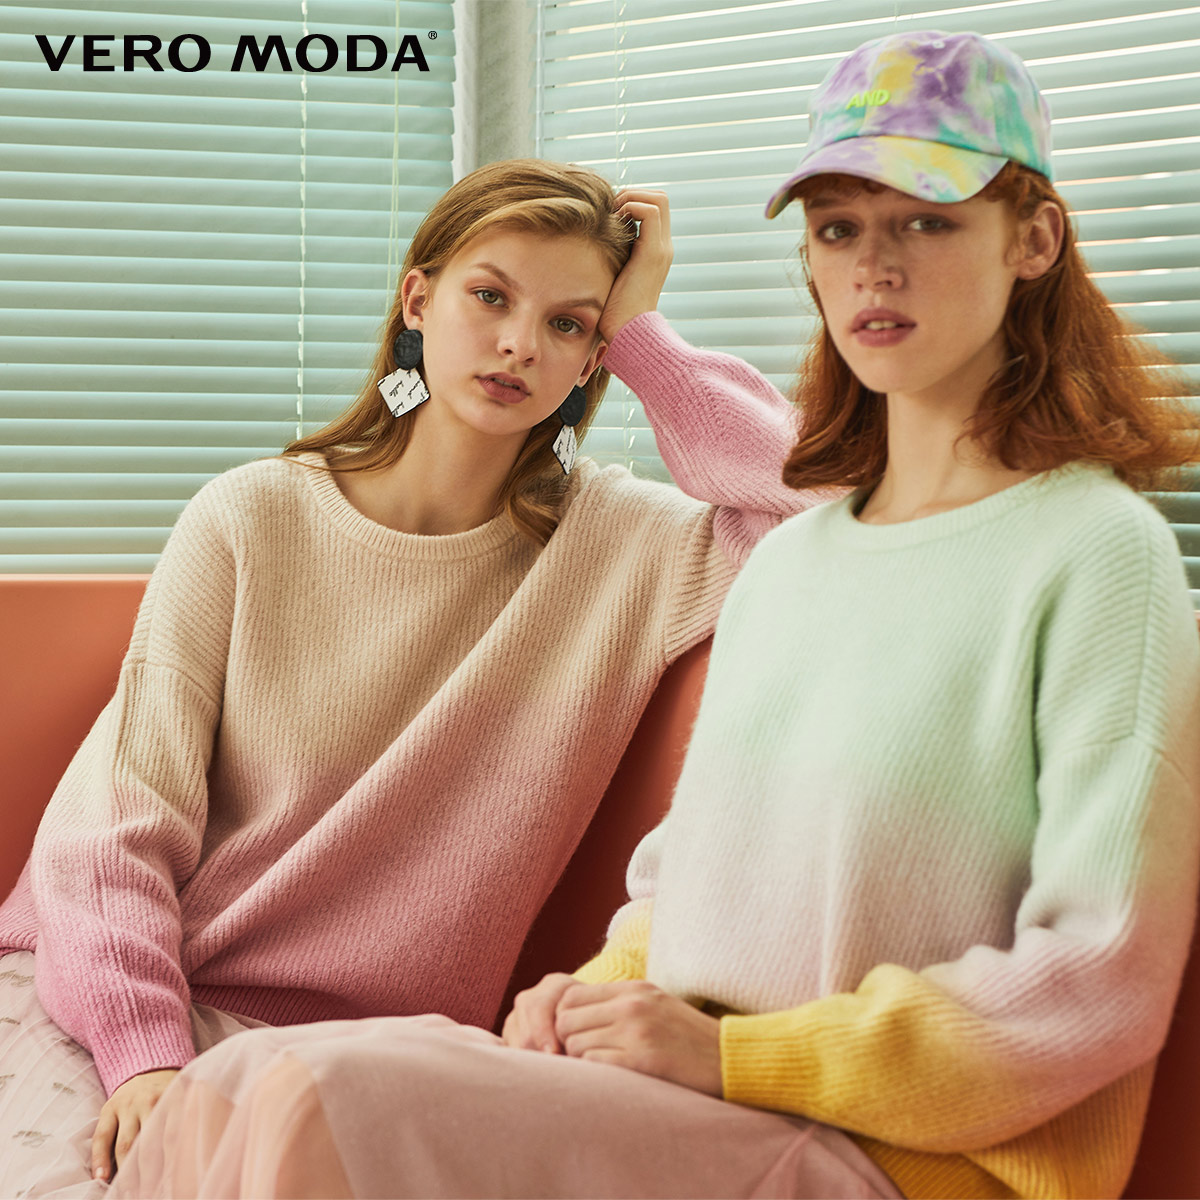 Vero Moda New Women's Gradient Color O-neck Flare Sleeves Sheep Wool Knit Sweater   319413516